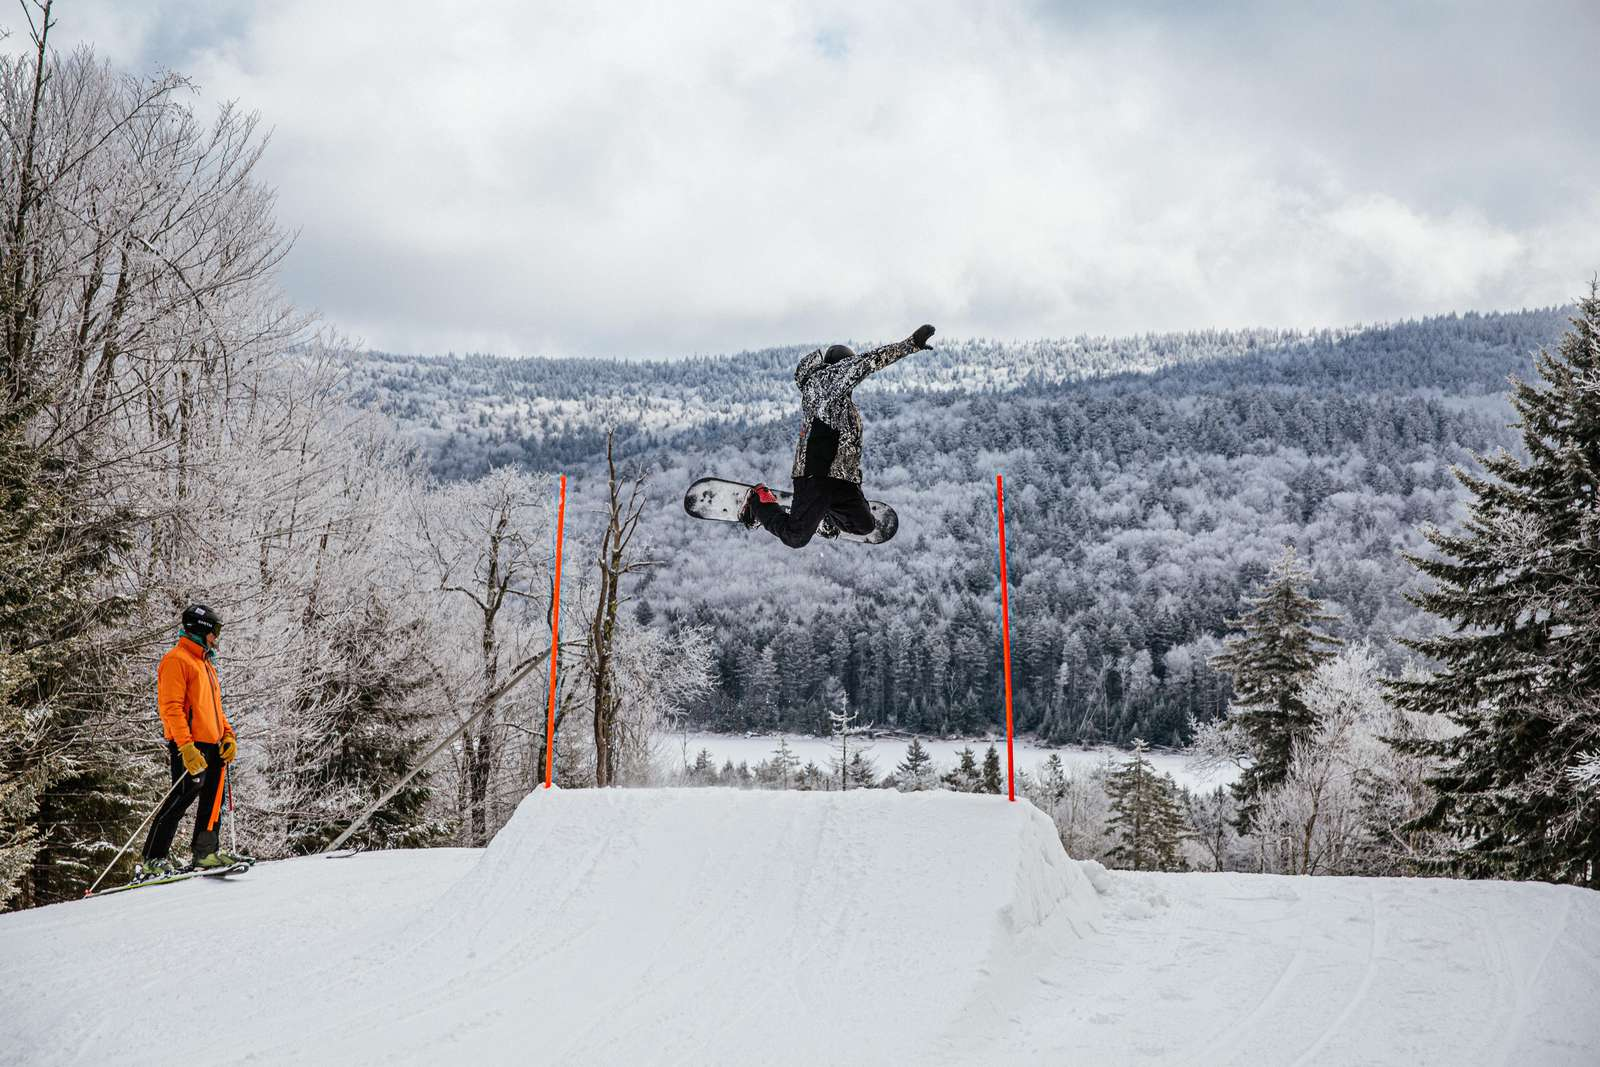 Seek out the edges of your snowboarding skills